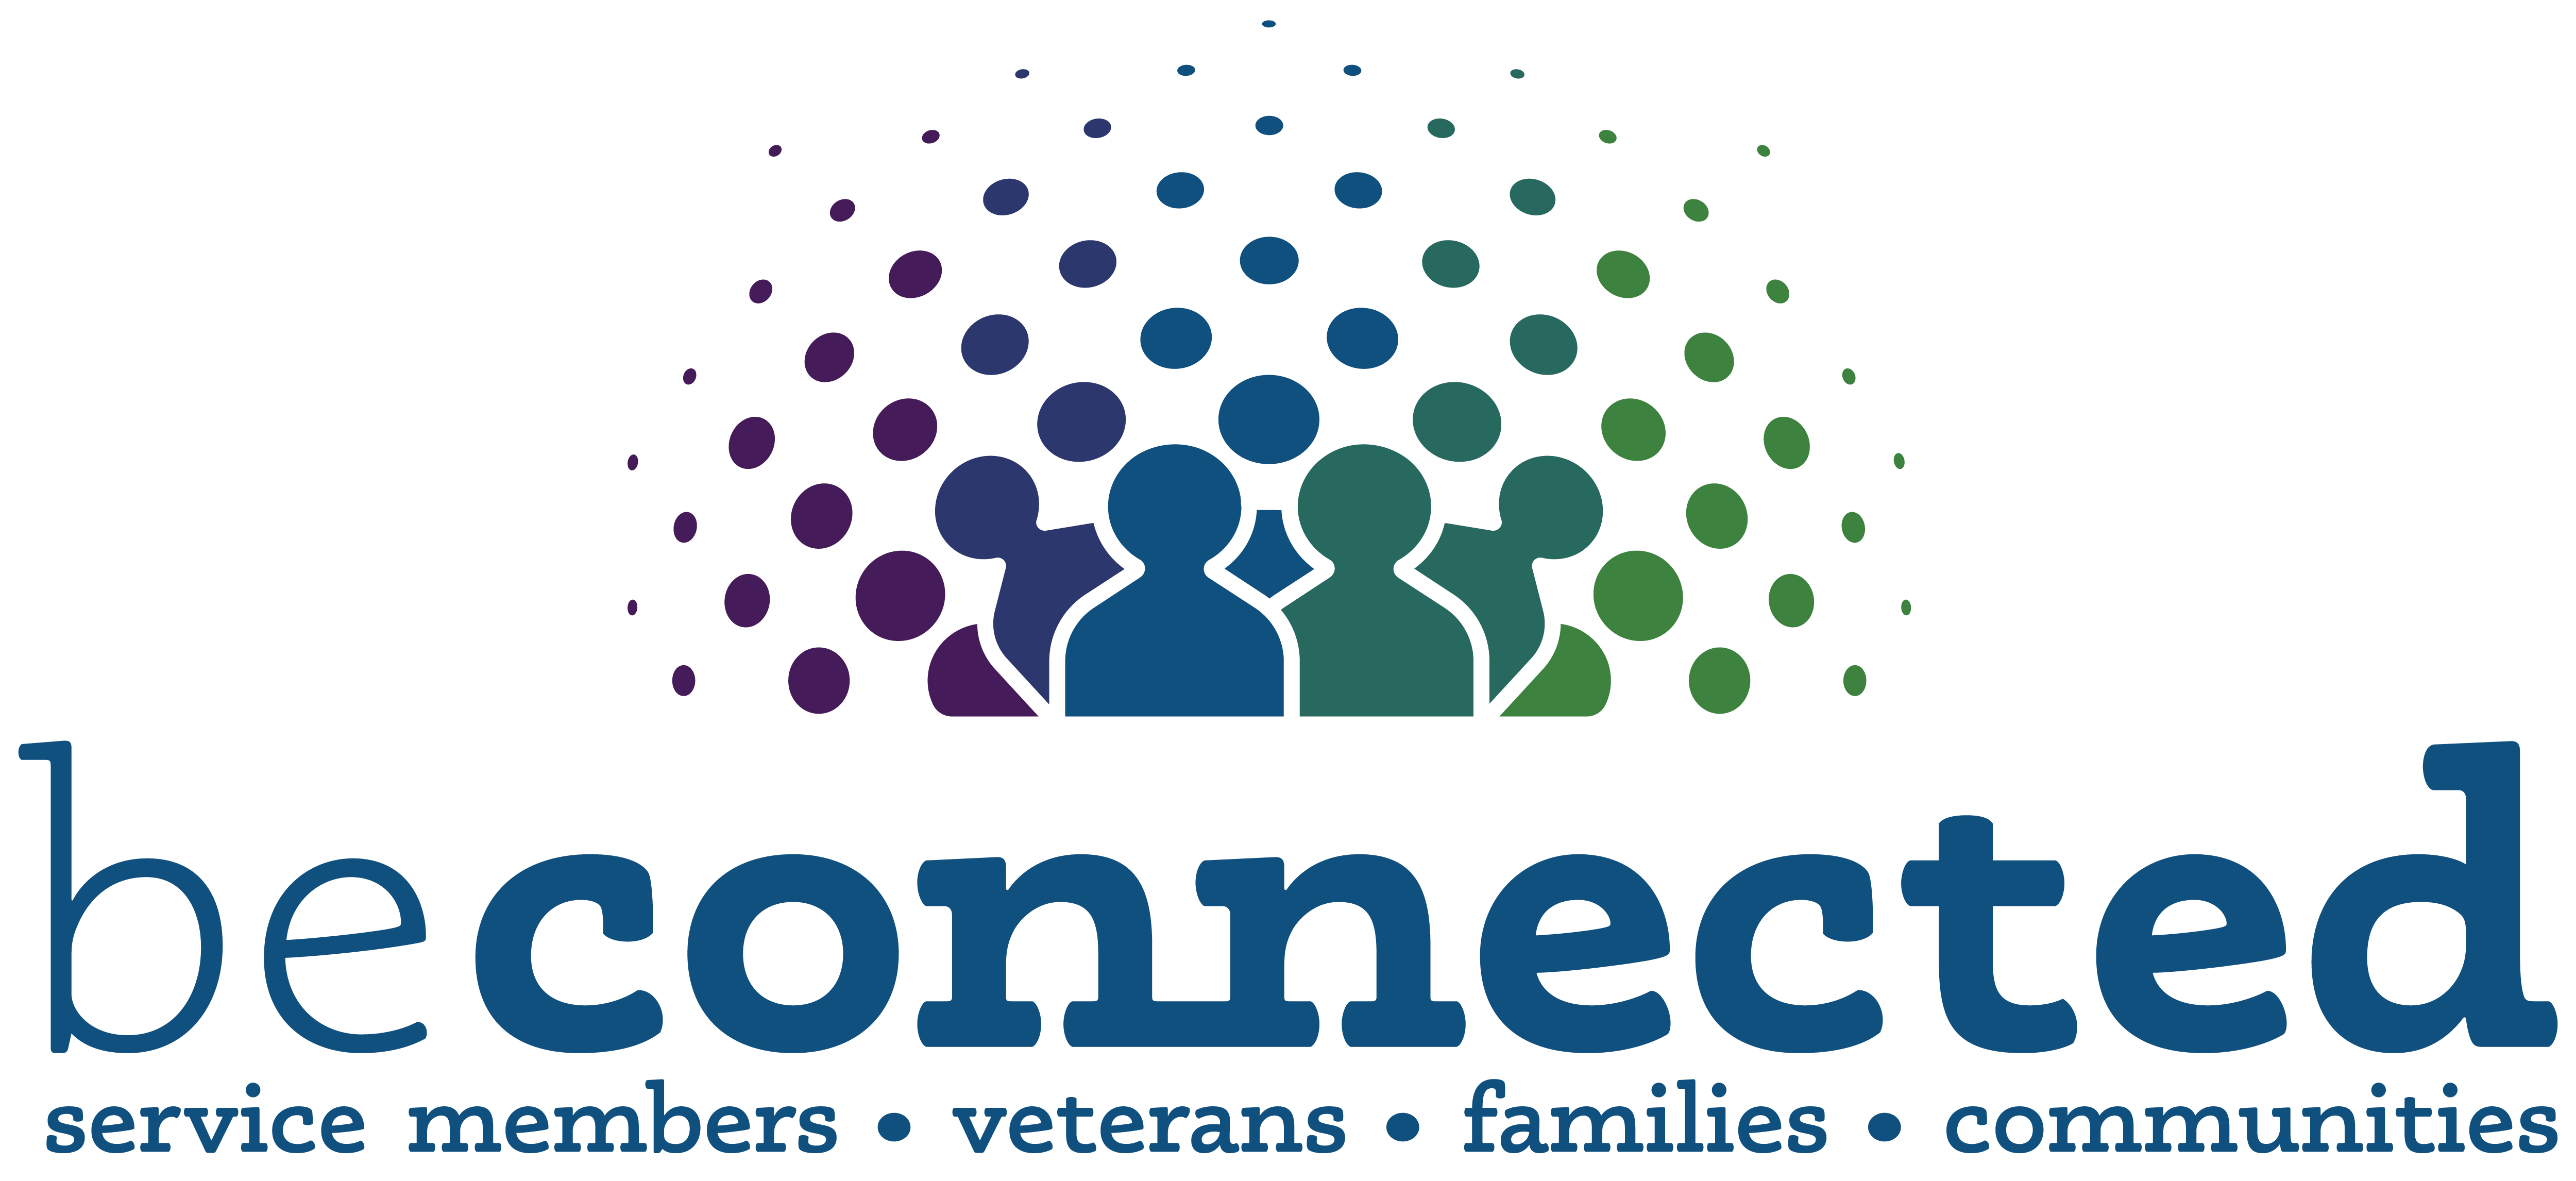 service members, veterans, families, communities